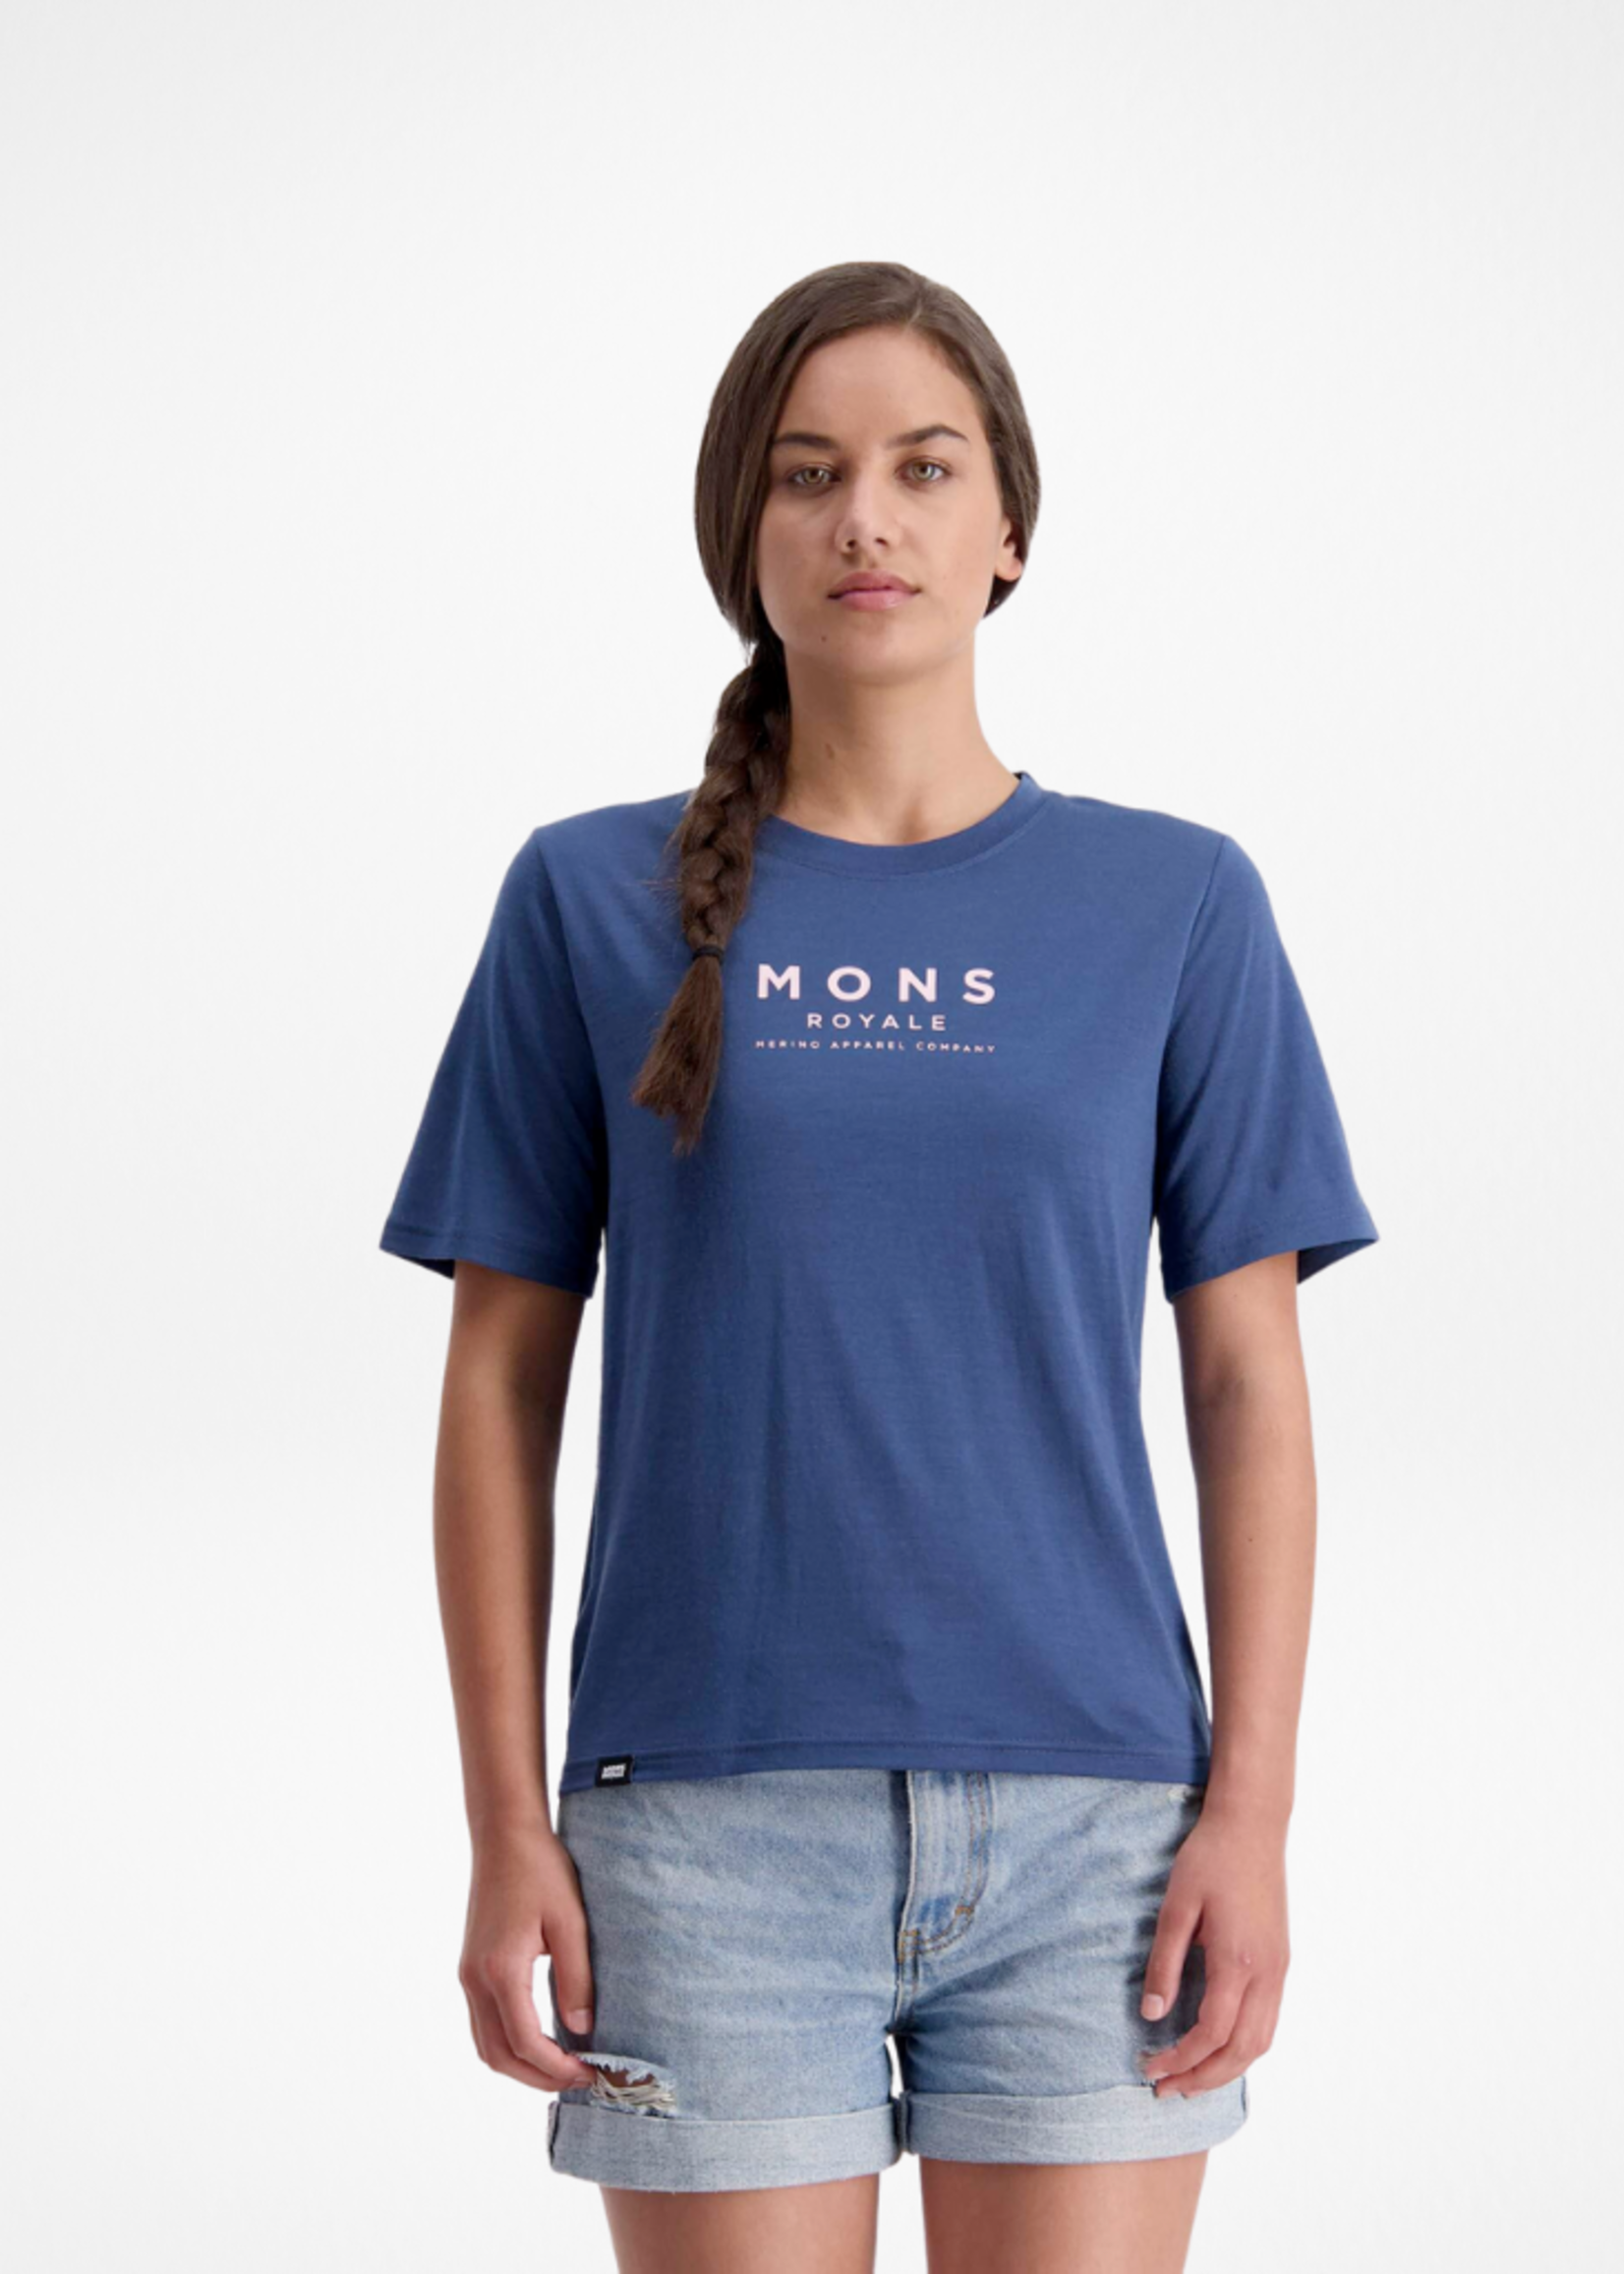 MONS ROYALE 21 MONS ROYALE ICON NEUE TEE